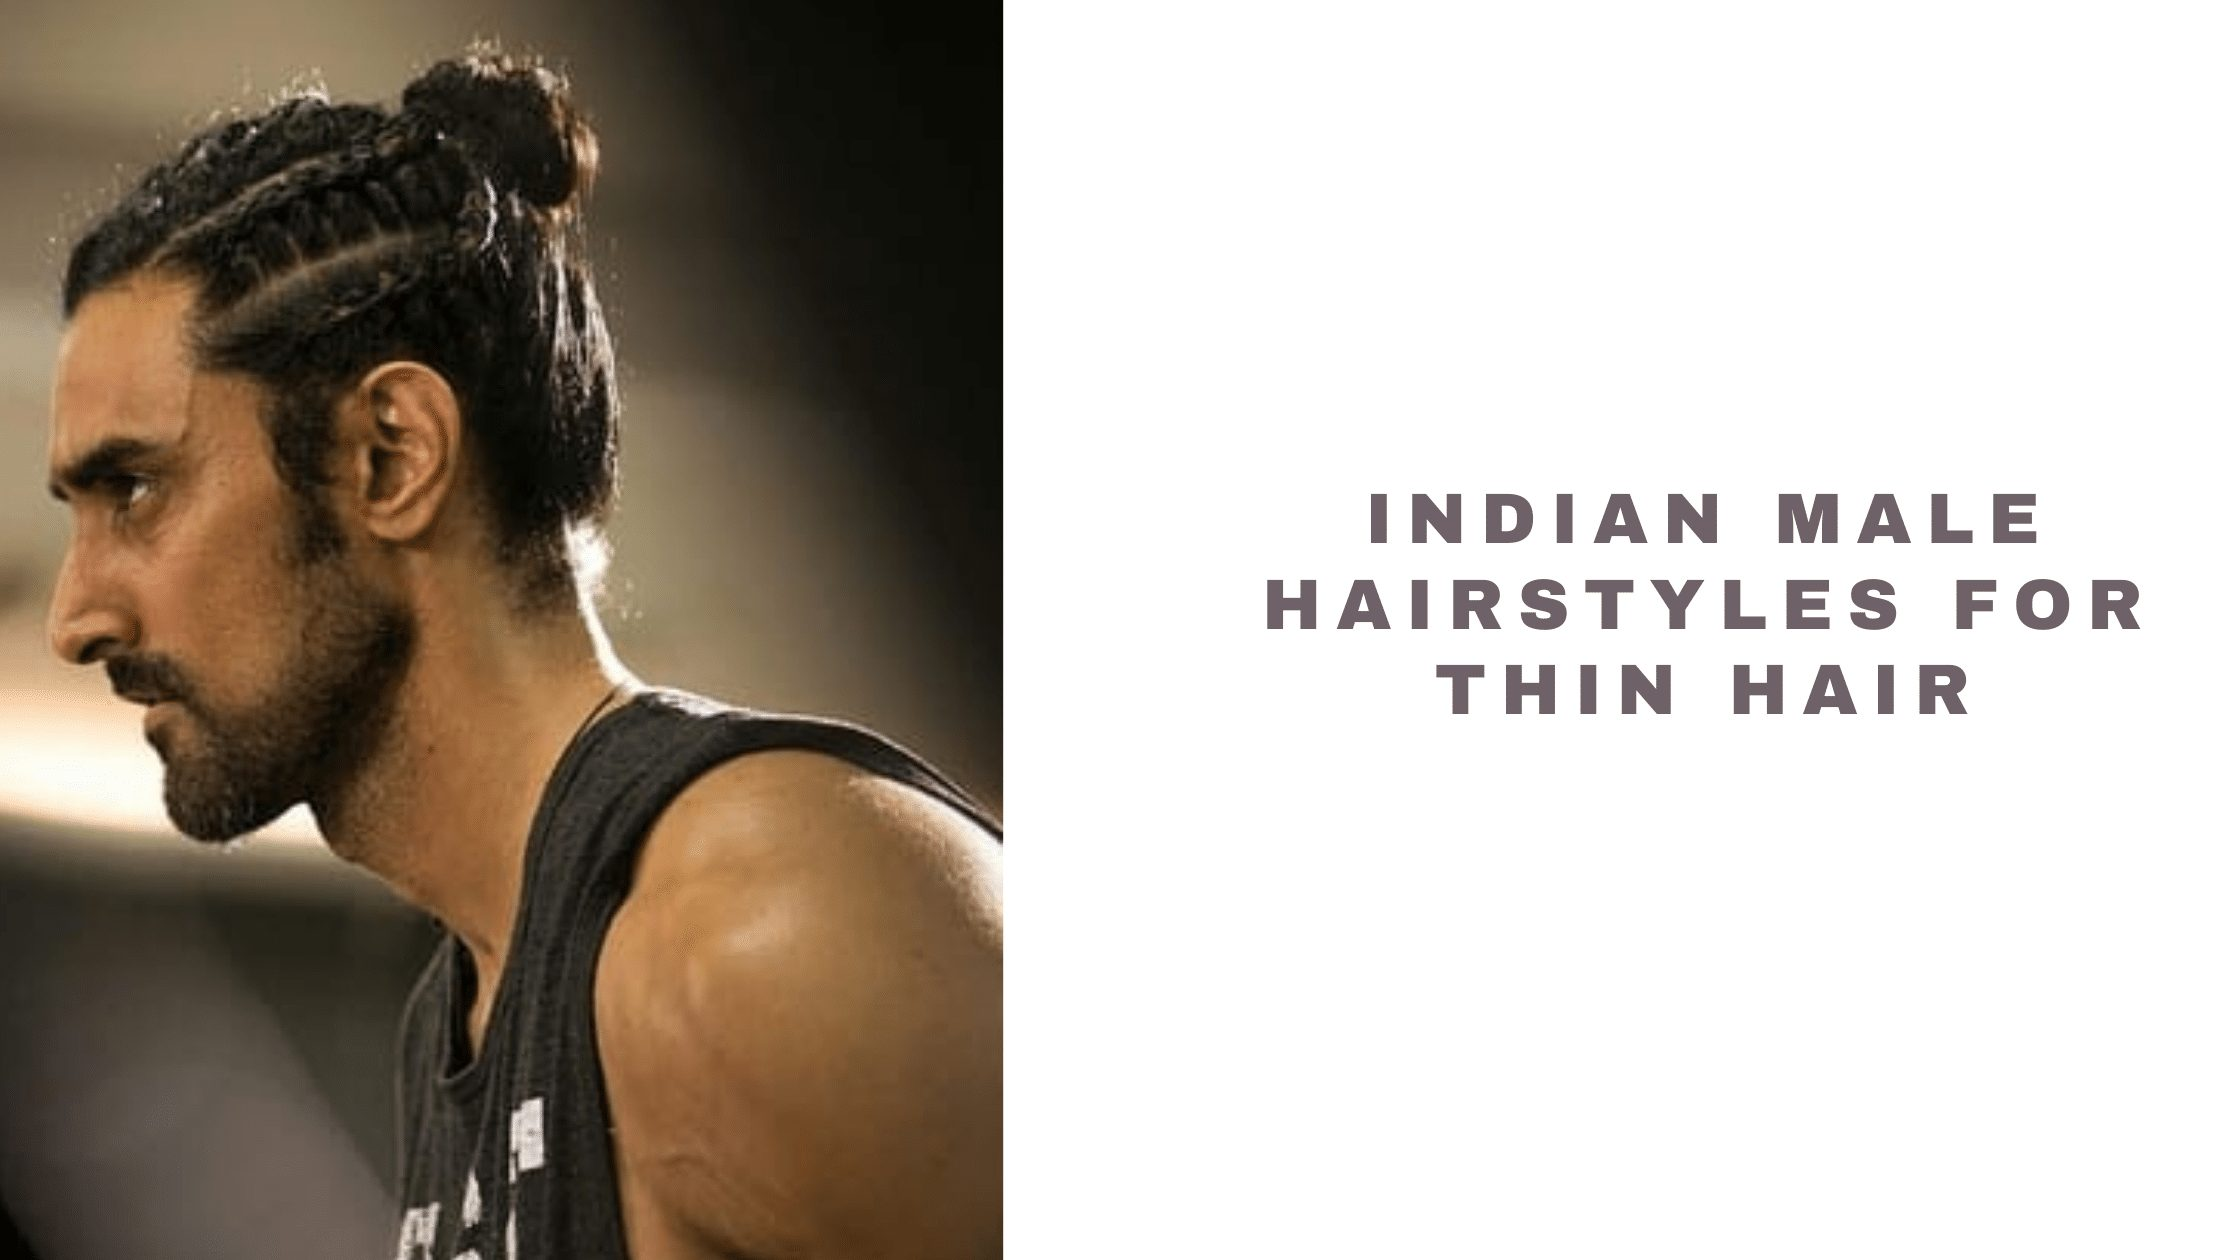 Indian Male Hairstyles for Thin Hair 2021